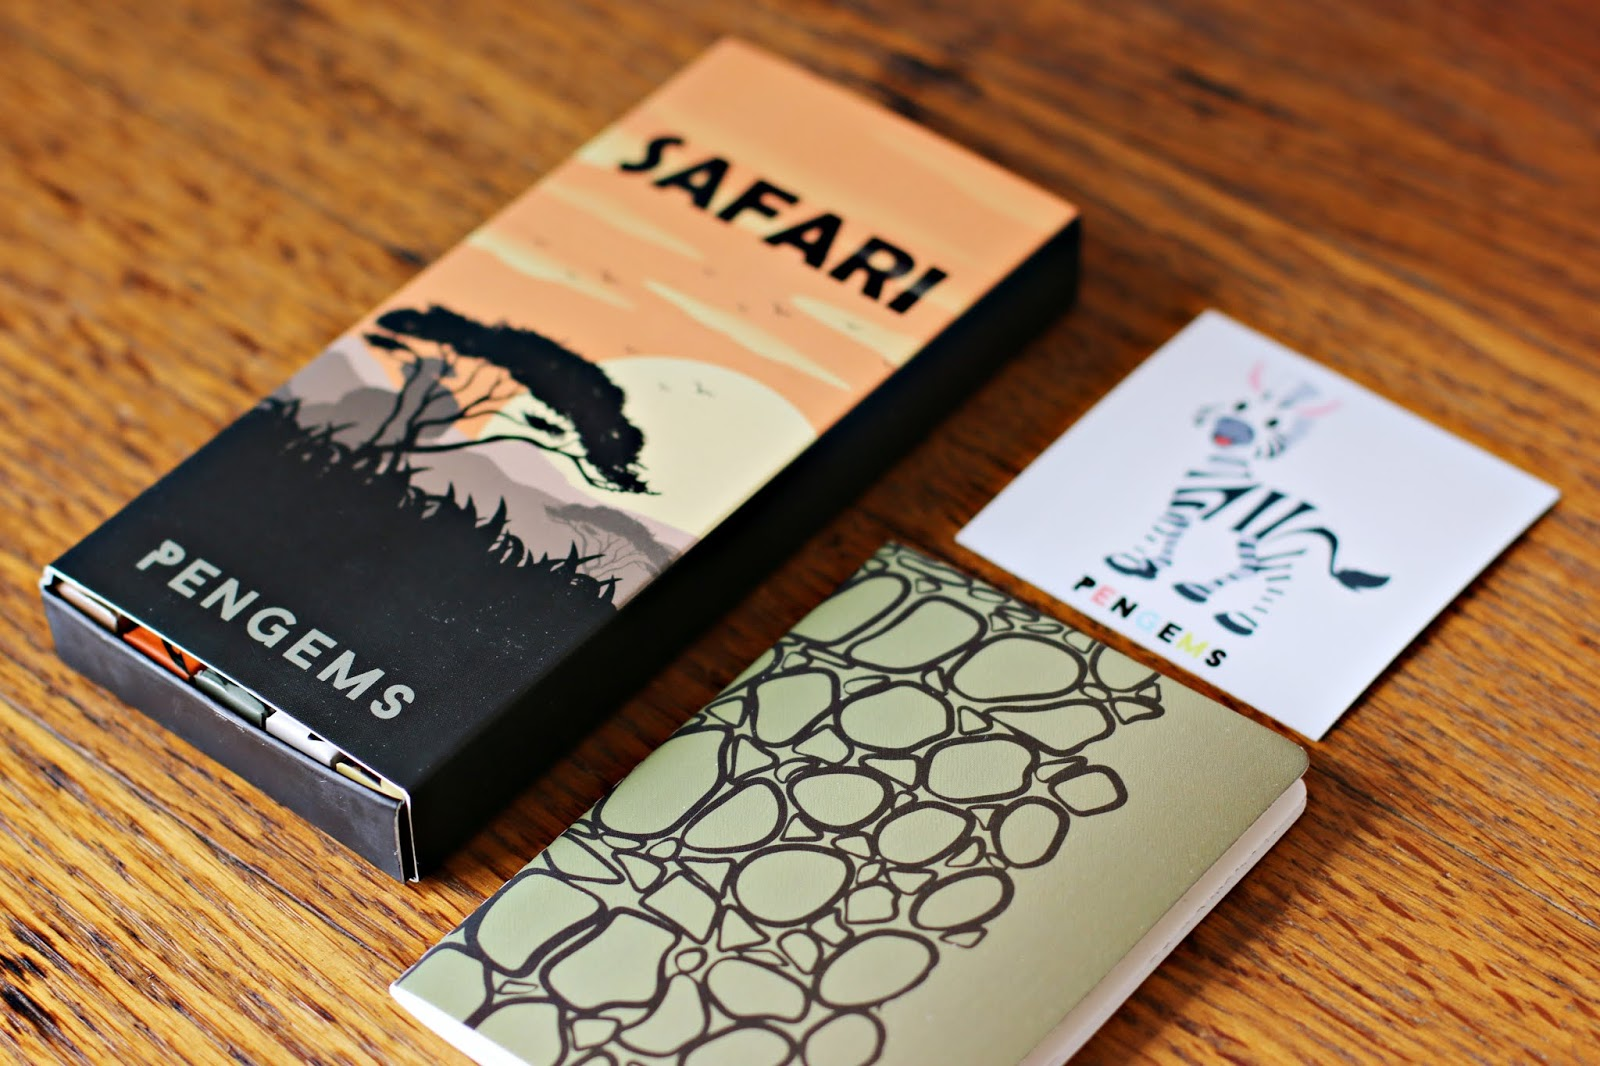 PenGems Safari Collection -- this shows the collection box, a sticker of a zebra and a small notebook